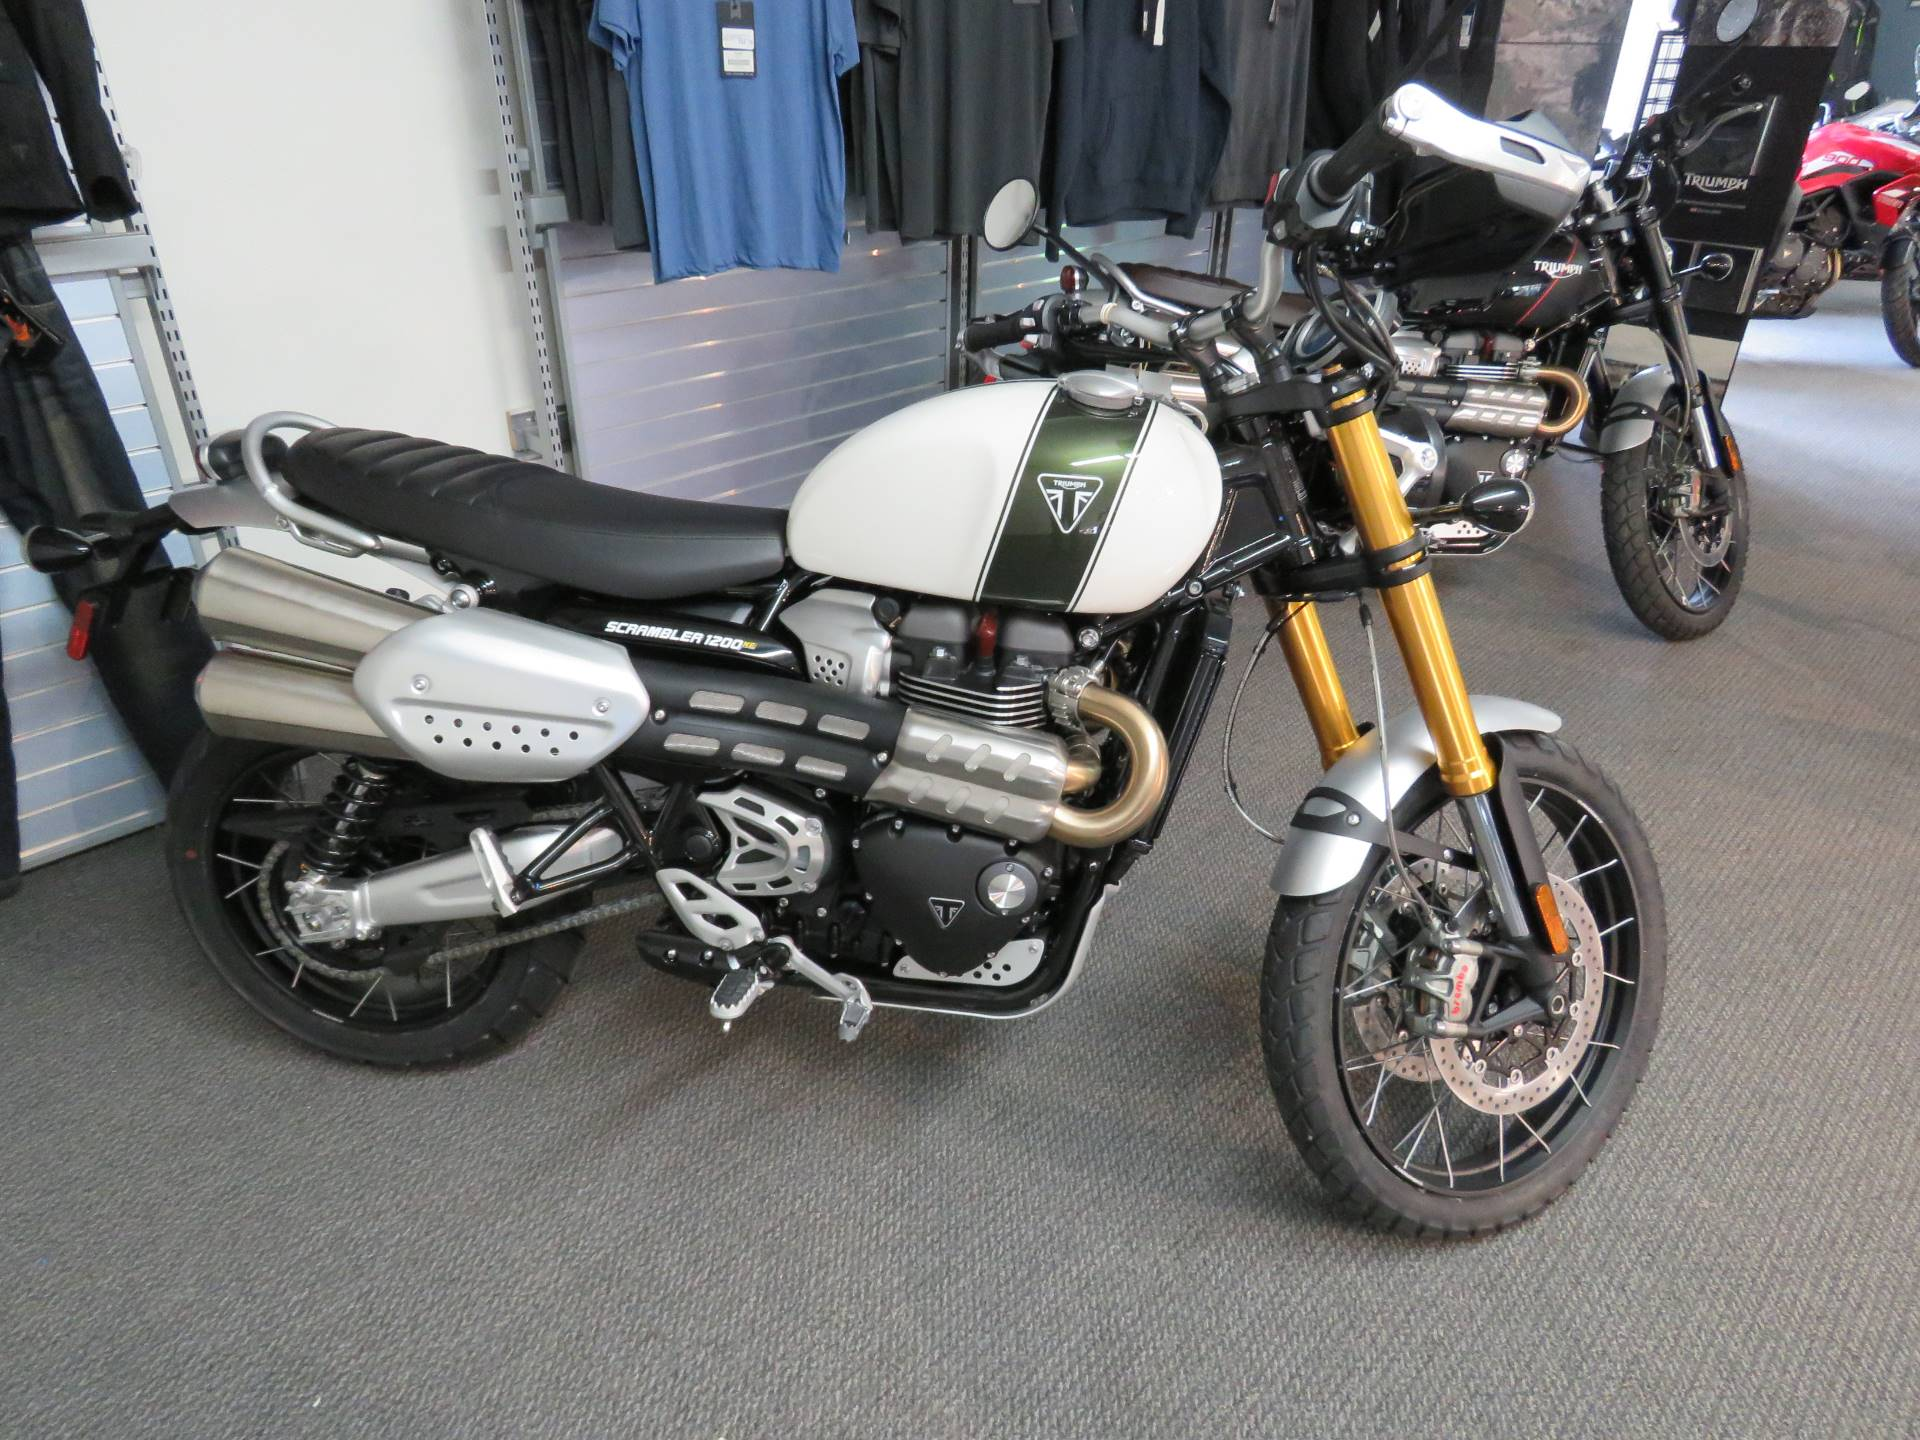 2020 Triumph Scrambler 1200 XE in Iowa City, Iowa - Photo 1